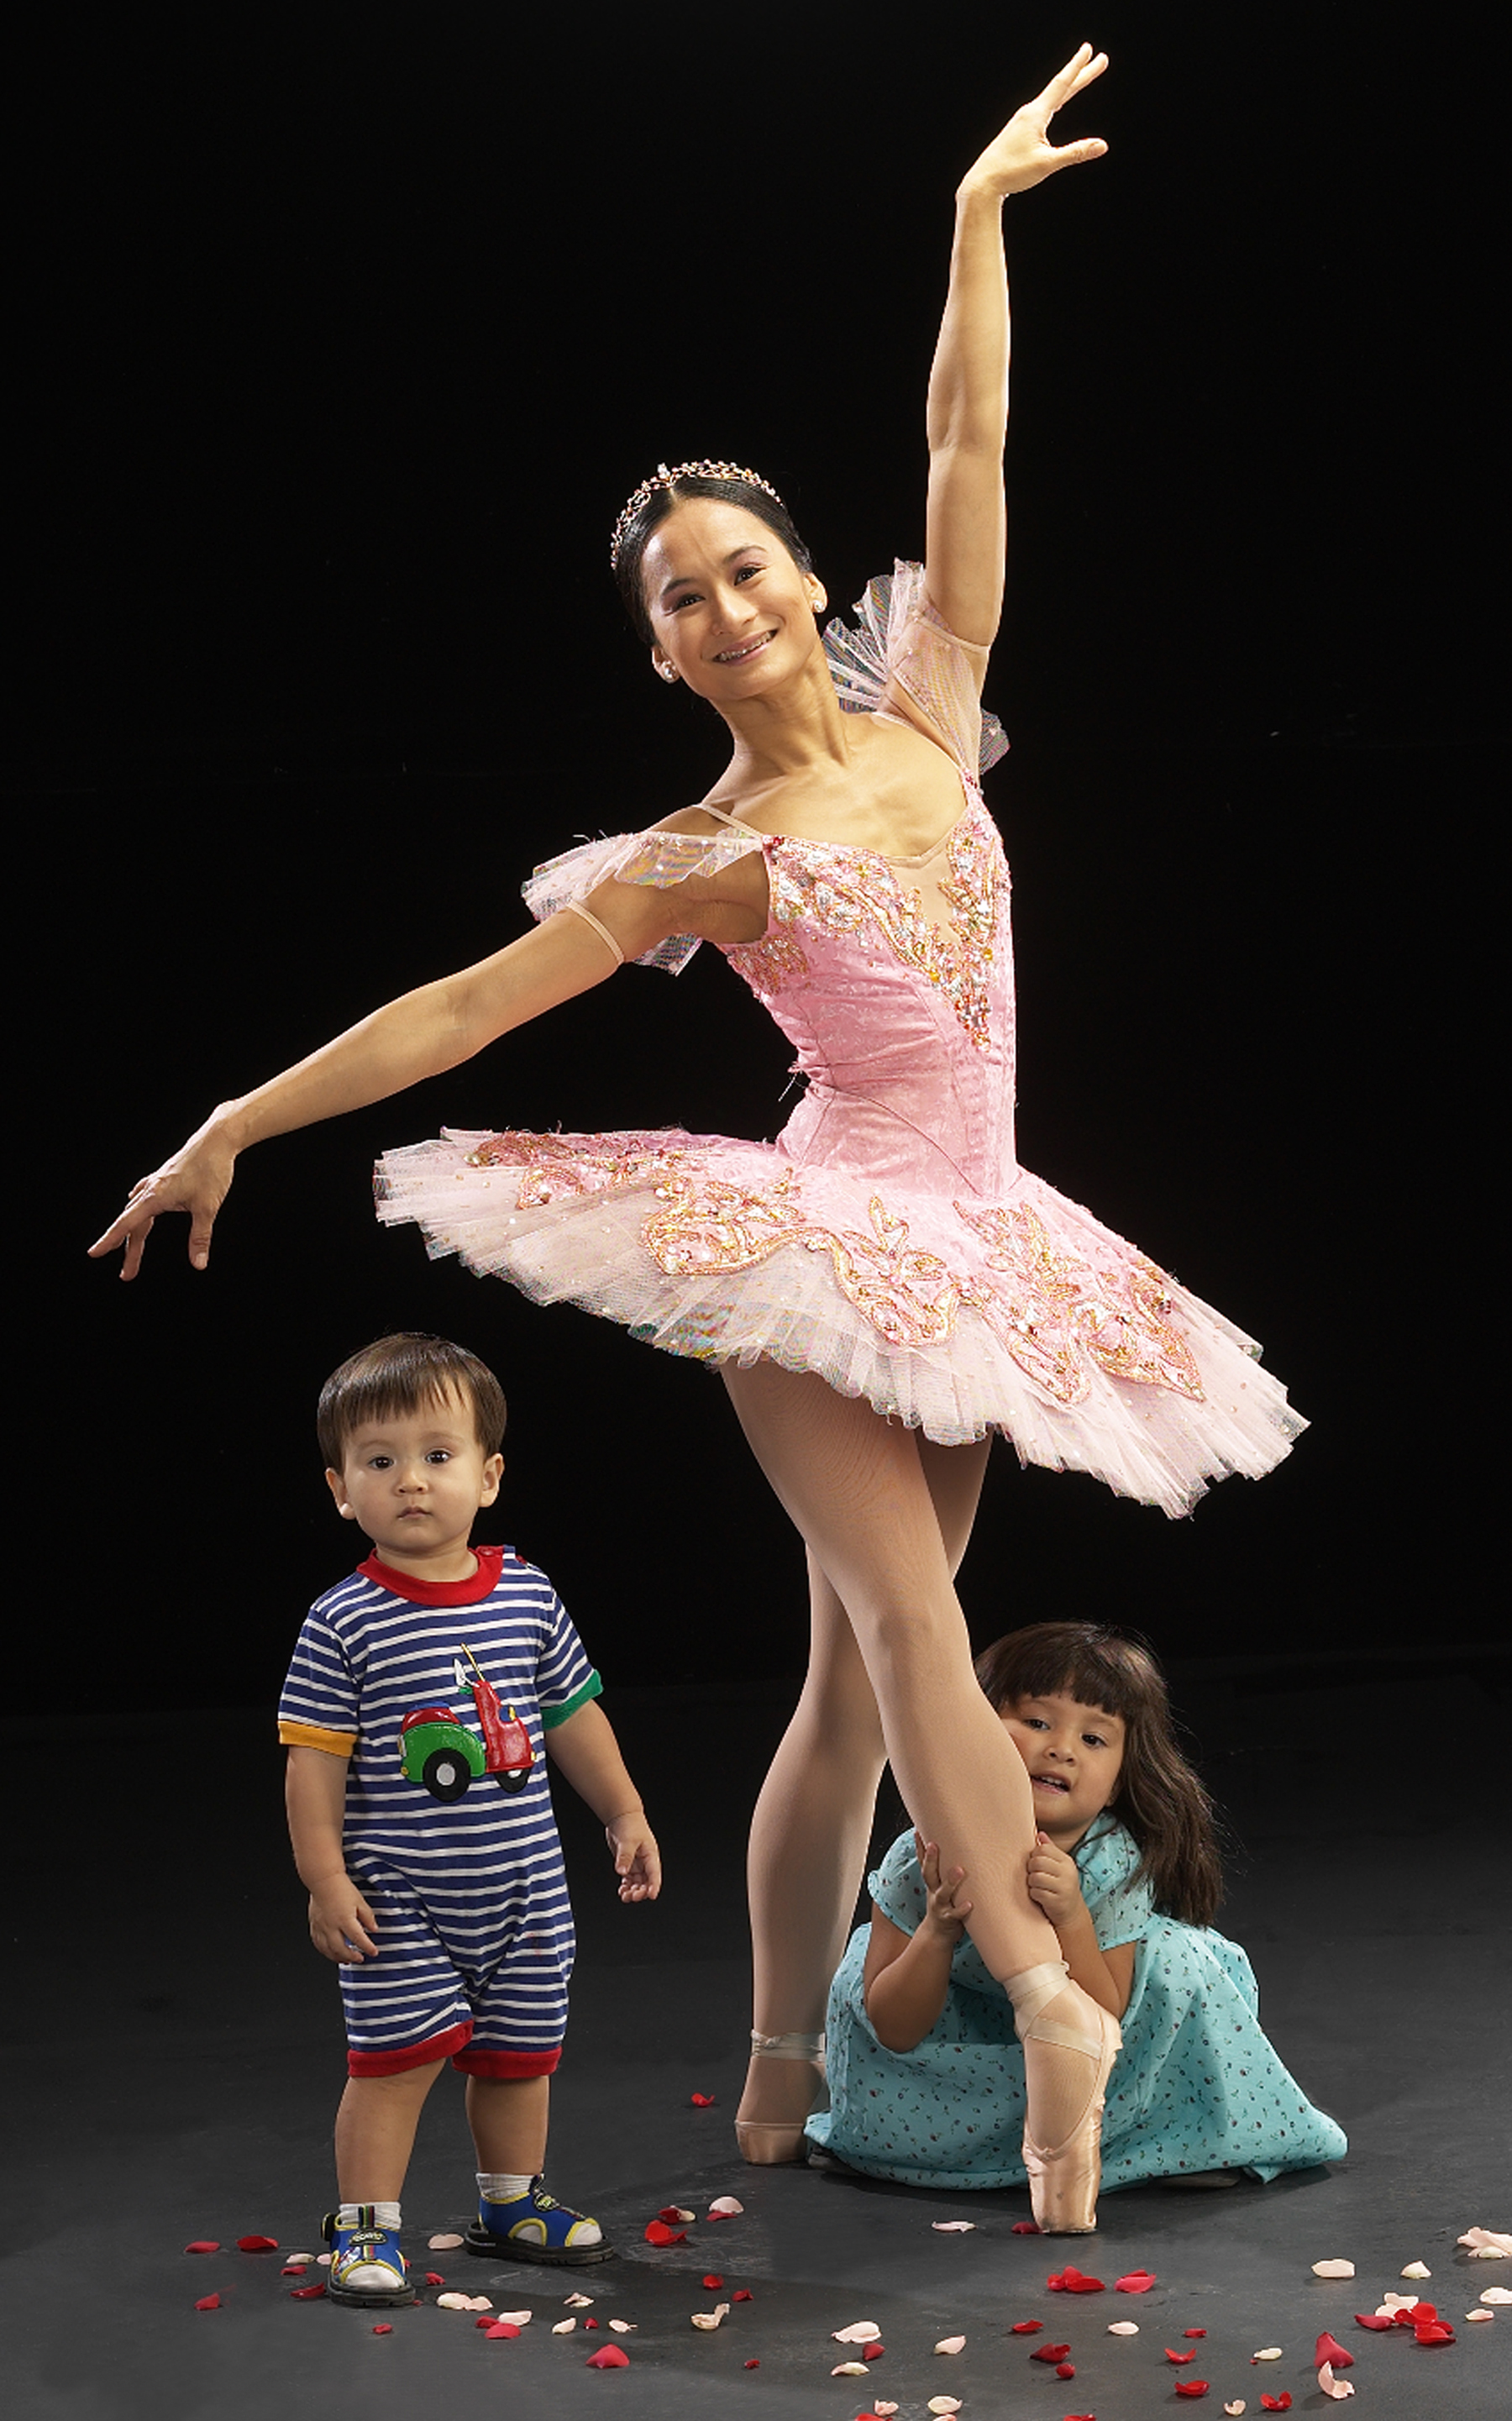 As toddlers, Missy and Mac end up stumbling into their mom's pictorial for  The Nutcracker.  Photo by G-nie Arambulo